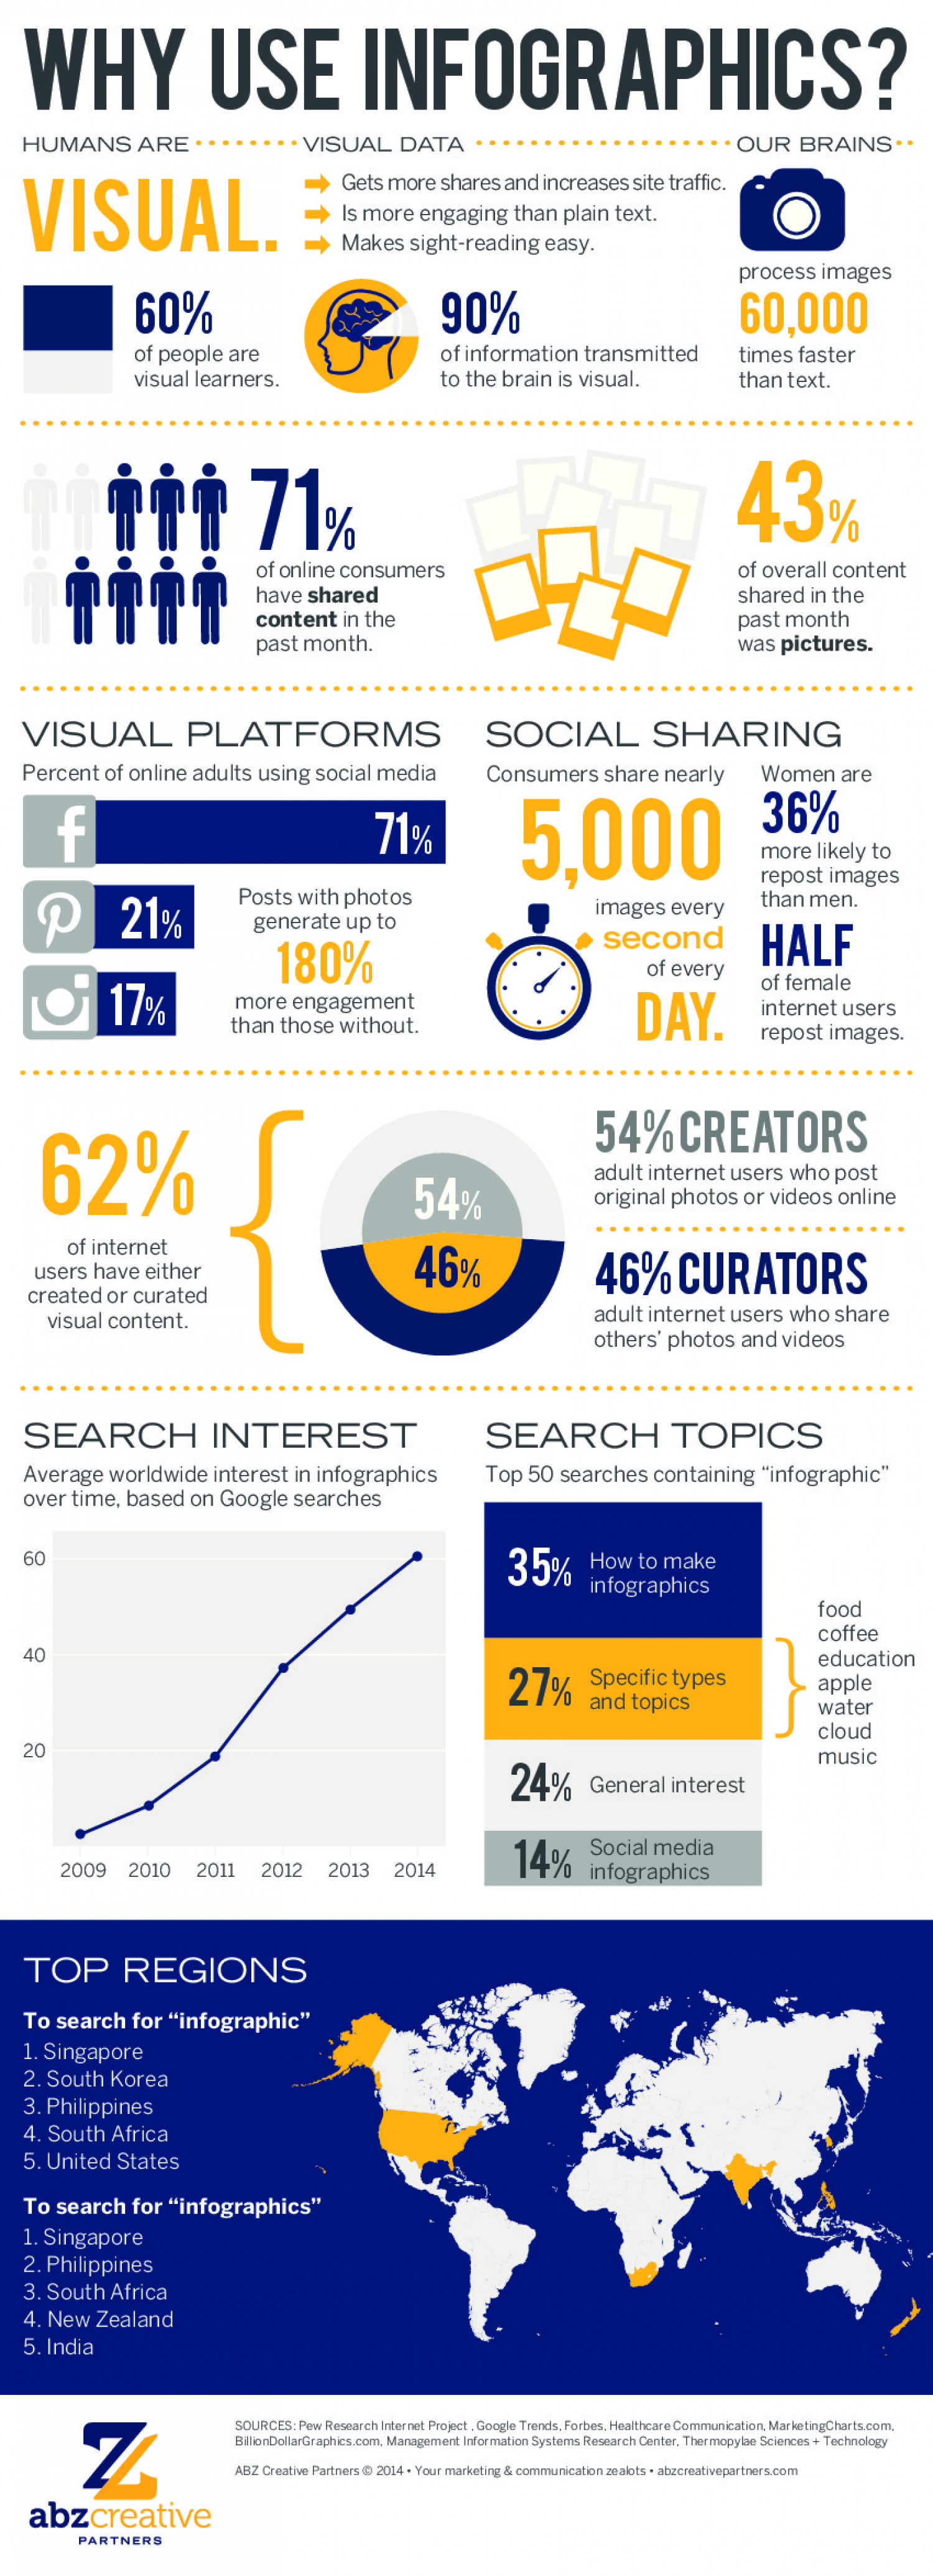 Top infographic topics